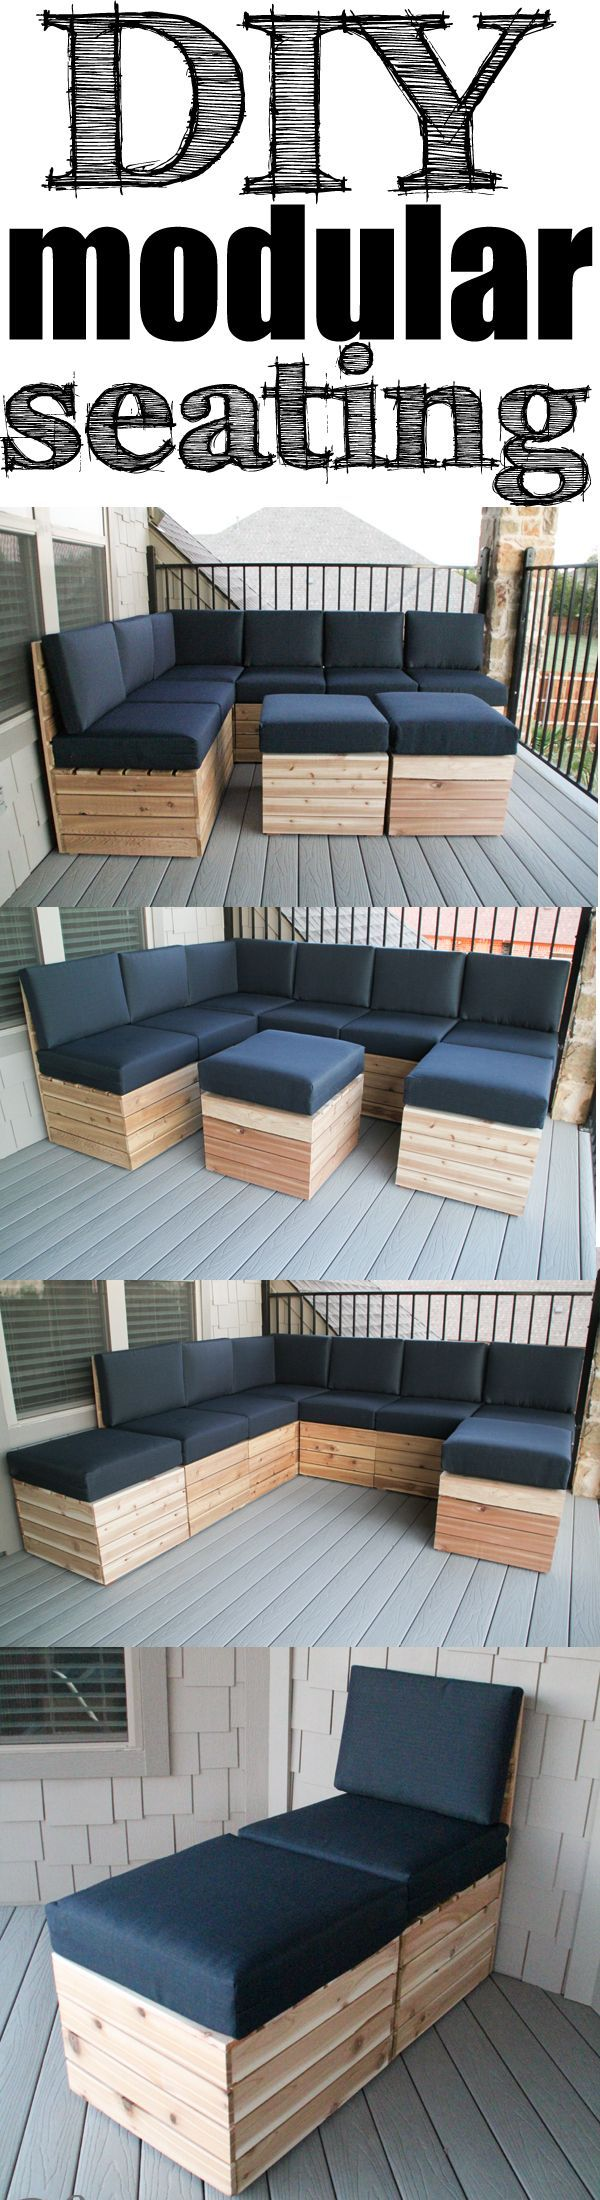 DIY Modular Outdoor Seating Part 45